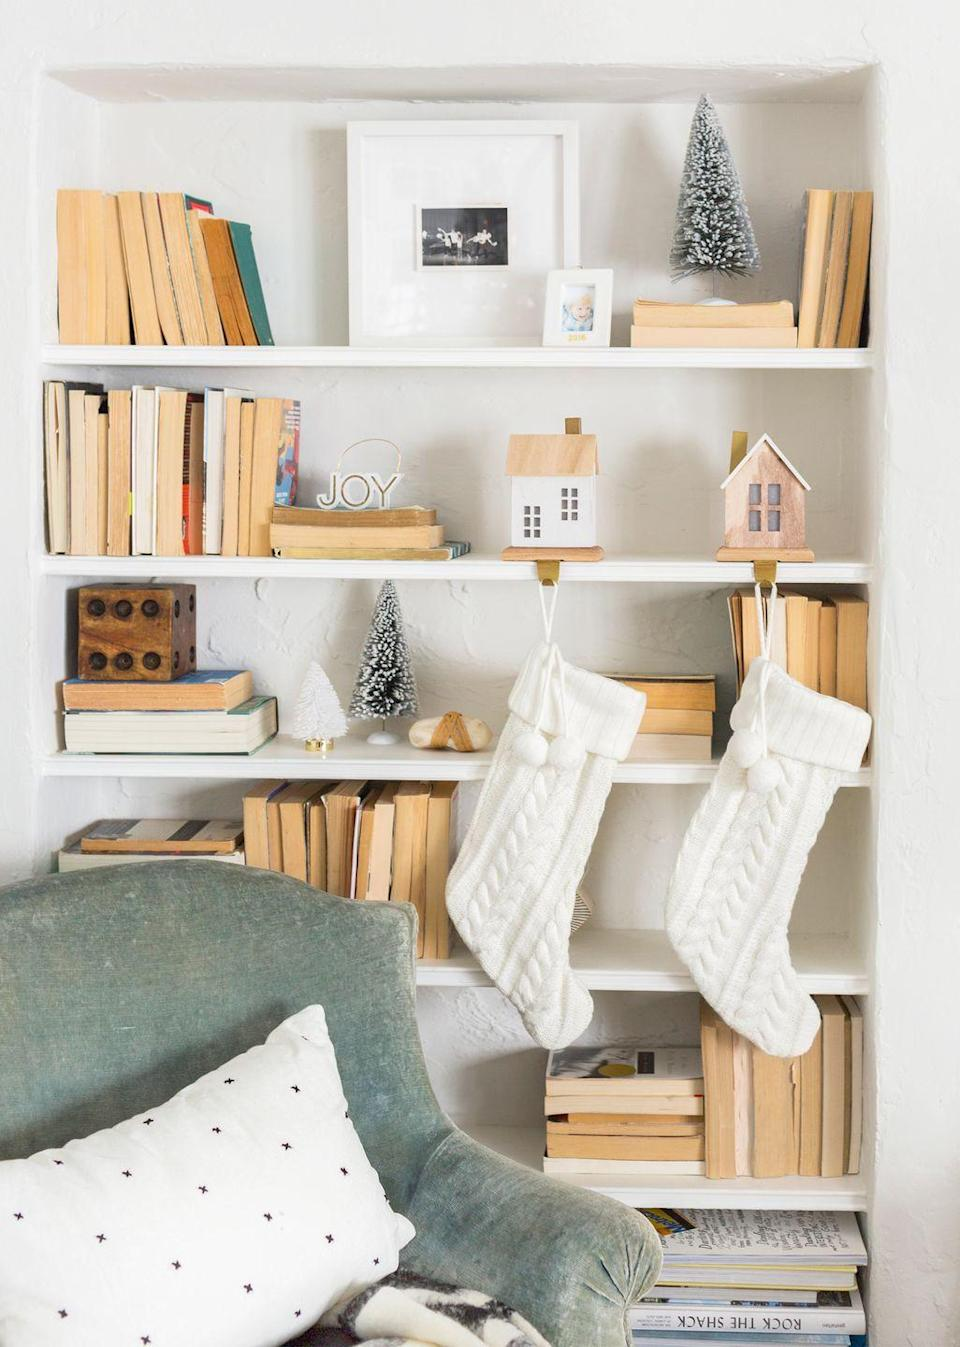 "<p>If you like the neutral colors in this reading nook designed and styled by <a href=""https://stylebyemilyhenderson.com/"" rel=""nofollow noopener"" target=""_blank"" data-ylk=""slk:Emily Henderson"" class=""link rapid-noclick-resp"">Emily Henderson</a> for the holidays, recreate it with a few cream knit stockings and miniatures. Instead of buying them, get crafty with mini wood house kit. Use <a href=""https://www.hgtv.com/lifestyle/holidays/modern-wood-christmas-house"" rel=""nofollow noopener"" target=""_blank"" data-ylk=""slk:this tutorial"" class=""link rapid-noclick-resp"">this tutorial</a> for guidance. </p>"